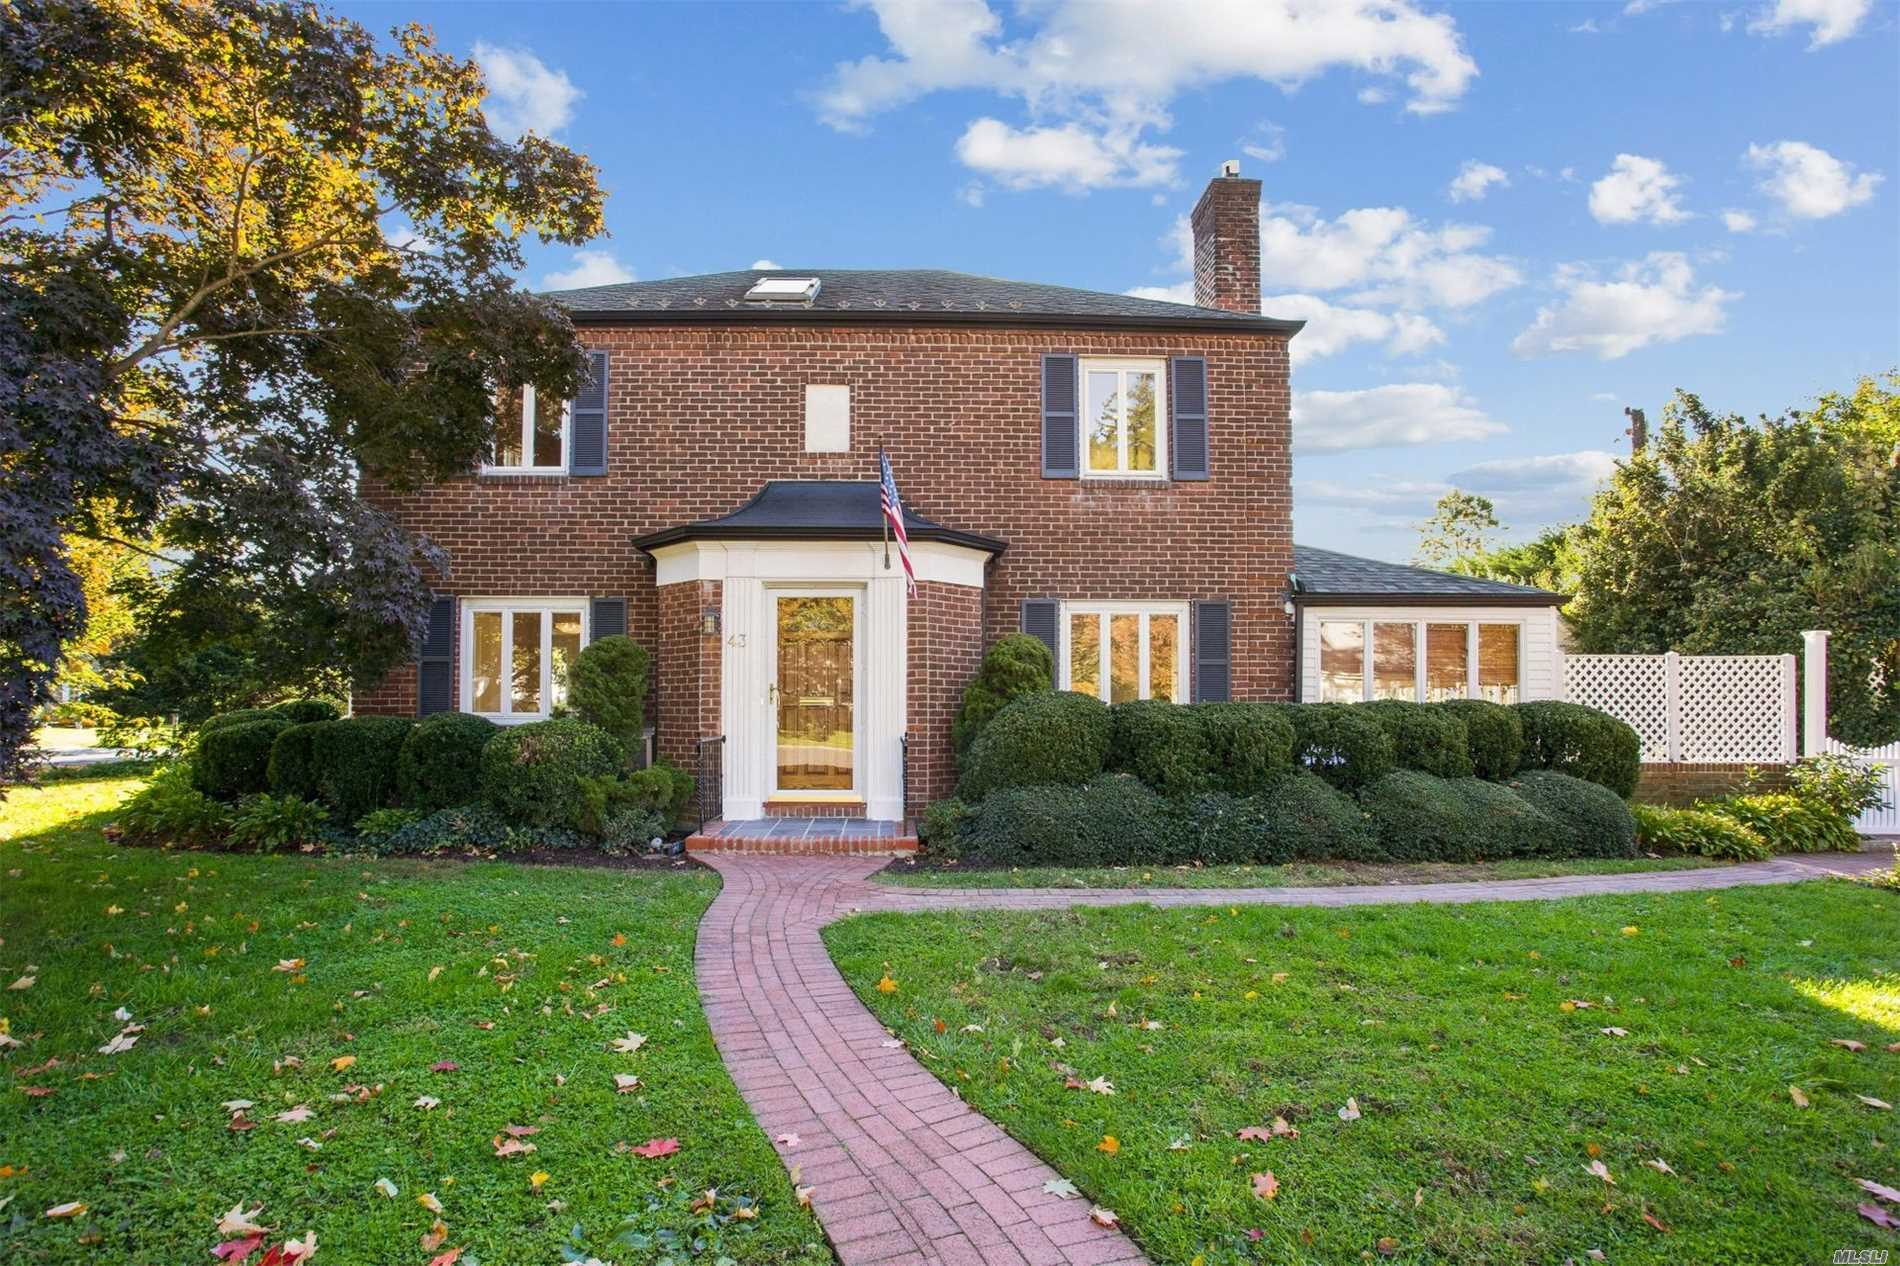 Fully Available - Motivated Seller & Move-In Ready Mott Built 1938 All Brick Colonial In The Heart Of The Mott Section. Great Curb Appeal And Sun-Drenched Interior With 7 Skylights. Inviting Kitchen/Great Room With Many Upgrades Including All New Kitchen Appliances With Freshly Finished Cabinetry And Corian Countertops. Access To A Beautiful & Private Brick Courtyard Is Thru Sliders From Family Room And Office/Sunroom. 3 Bedrooms, 2 Baths On 2nd Fl Including Ensuite Master.